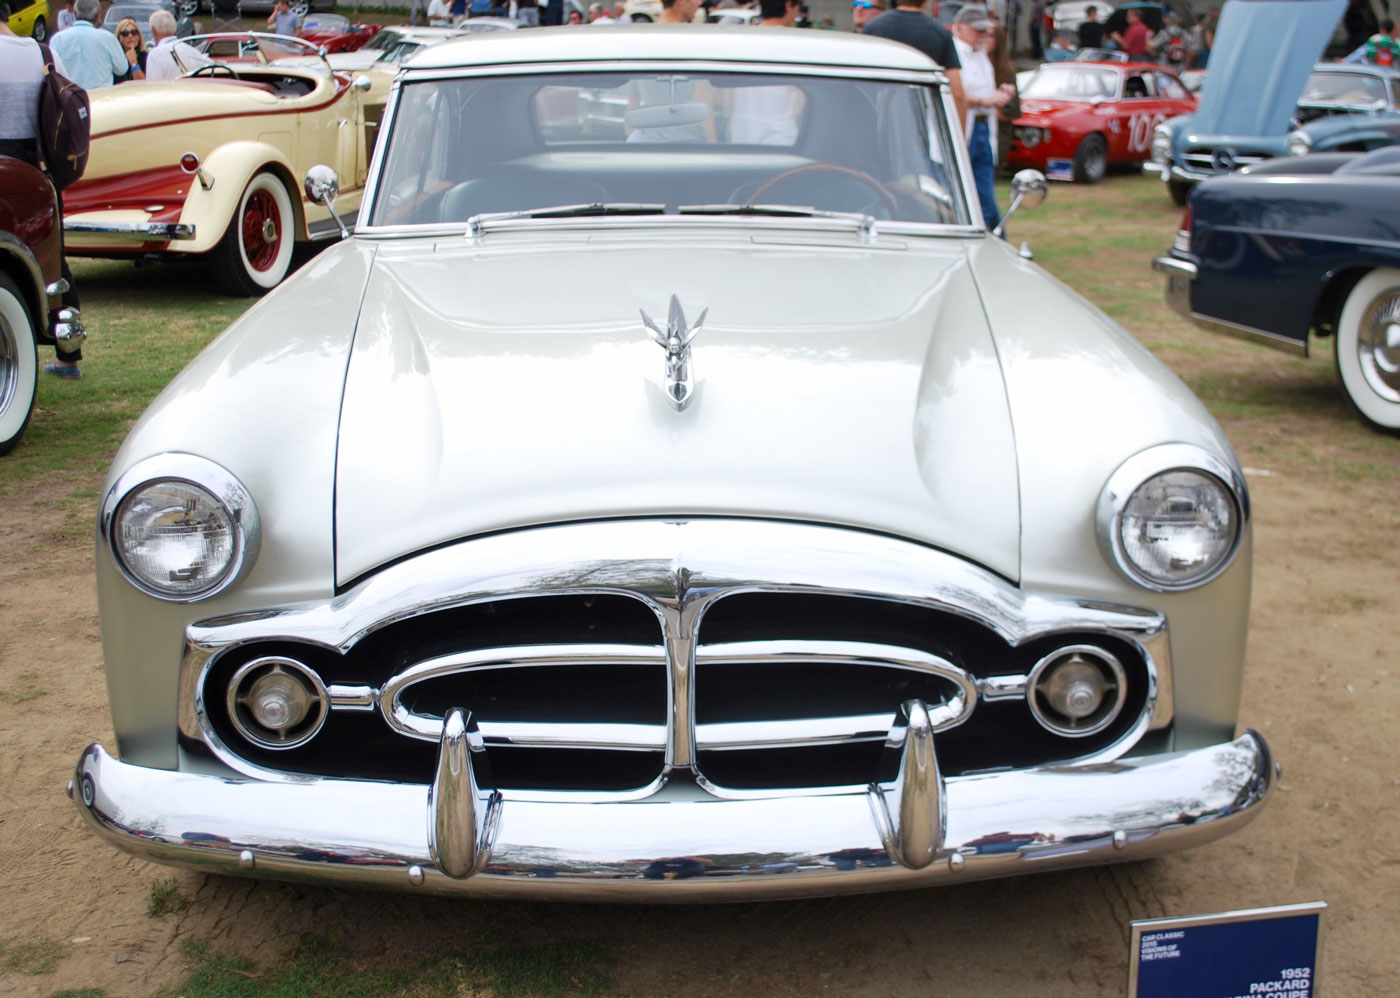 1952-Packard-coupe.jpg